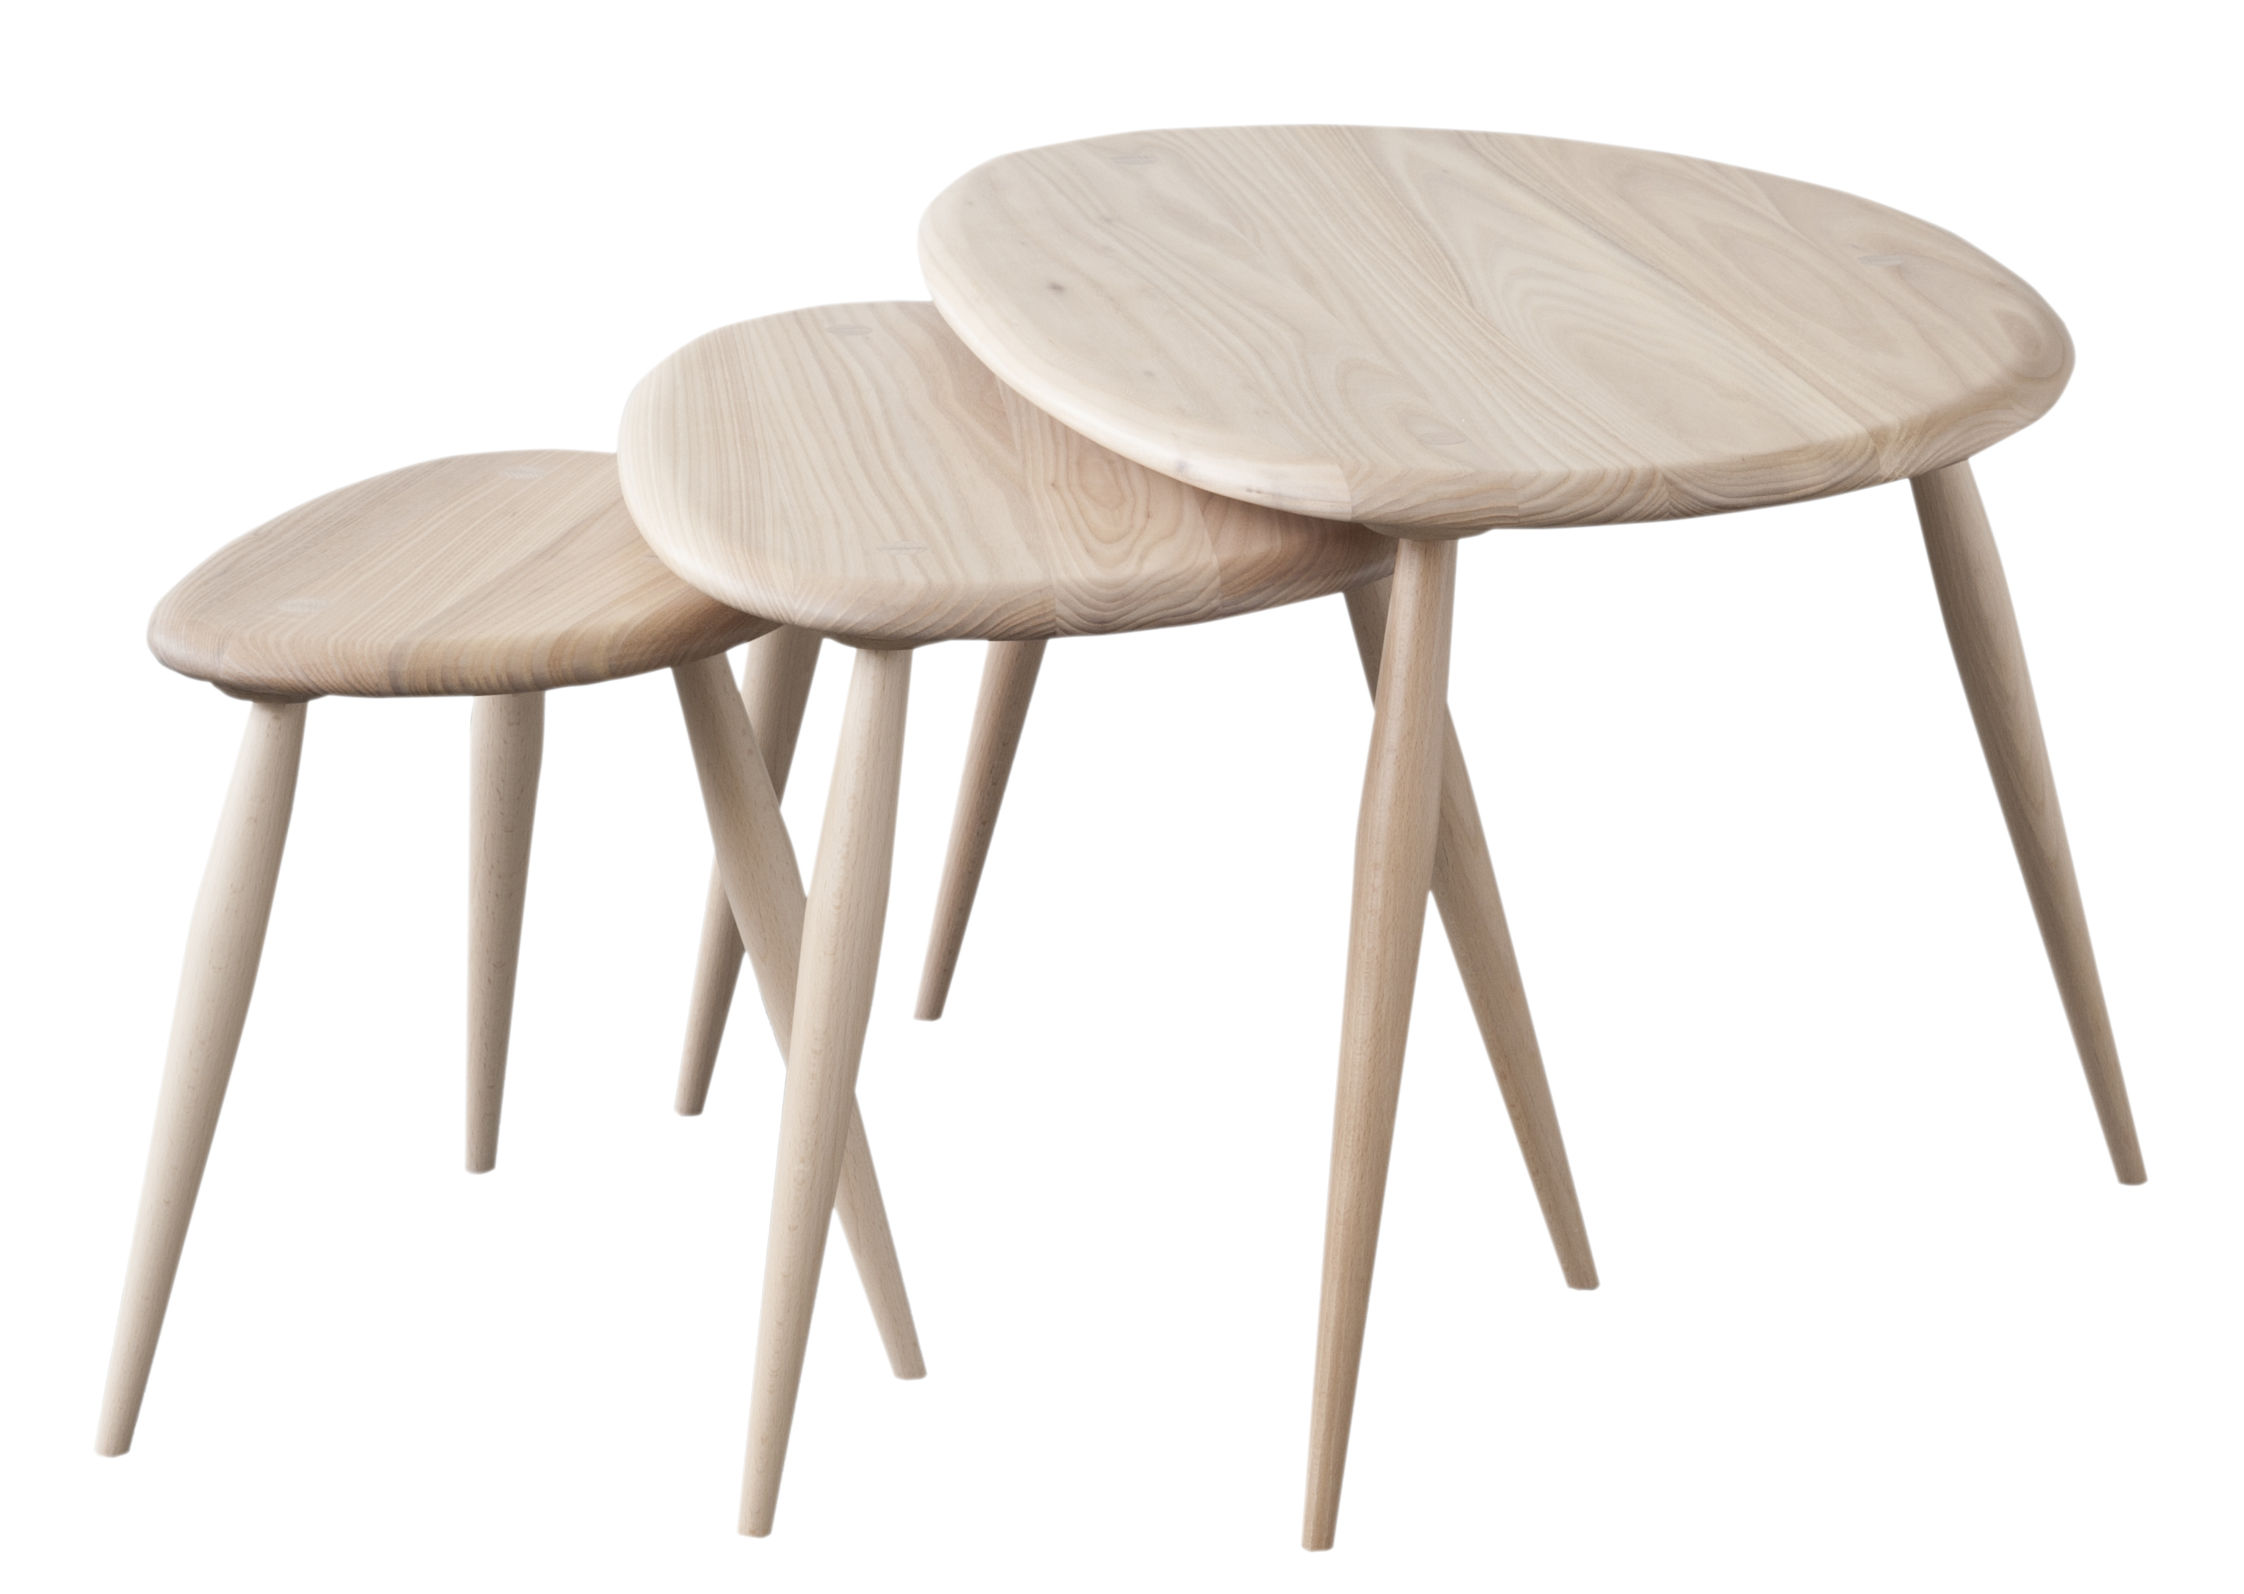 Nested Tables Originals By Ercol